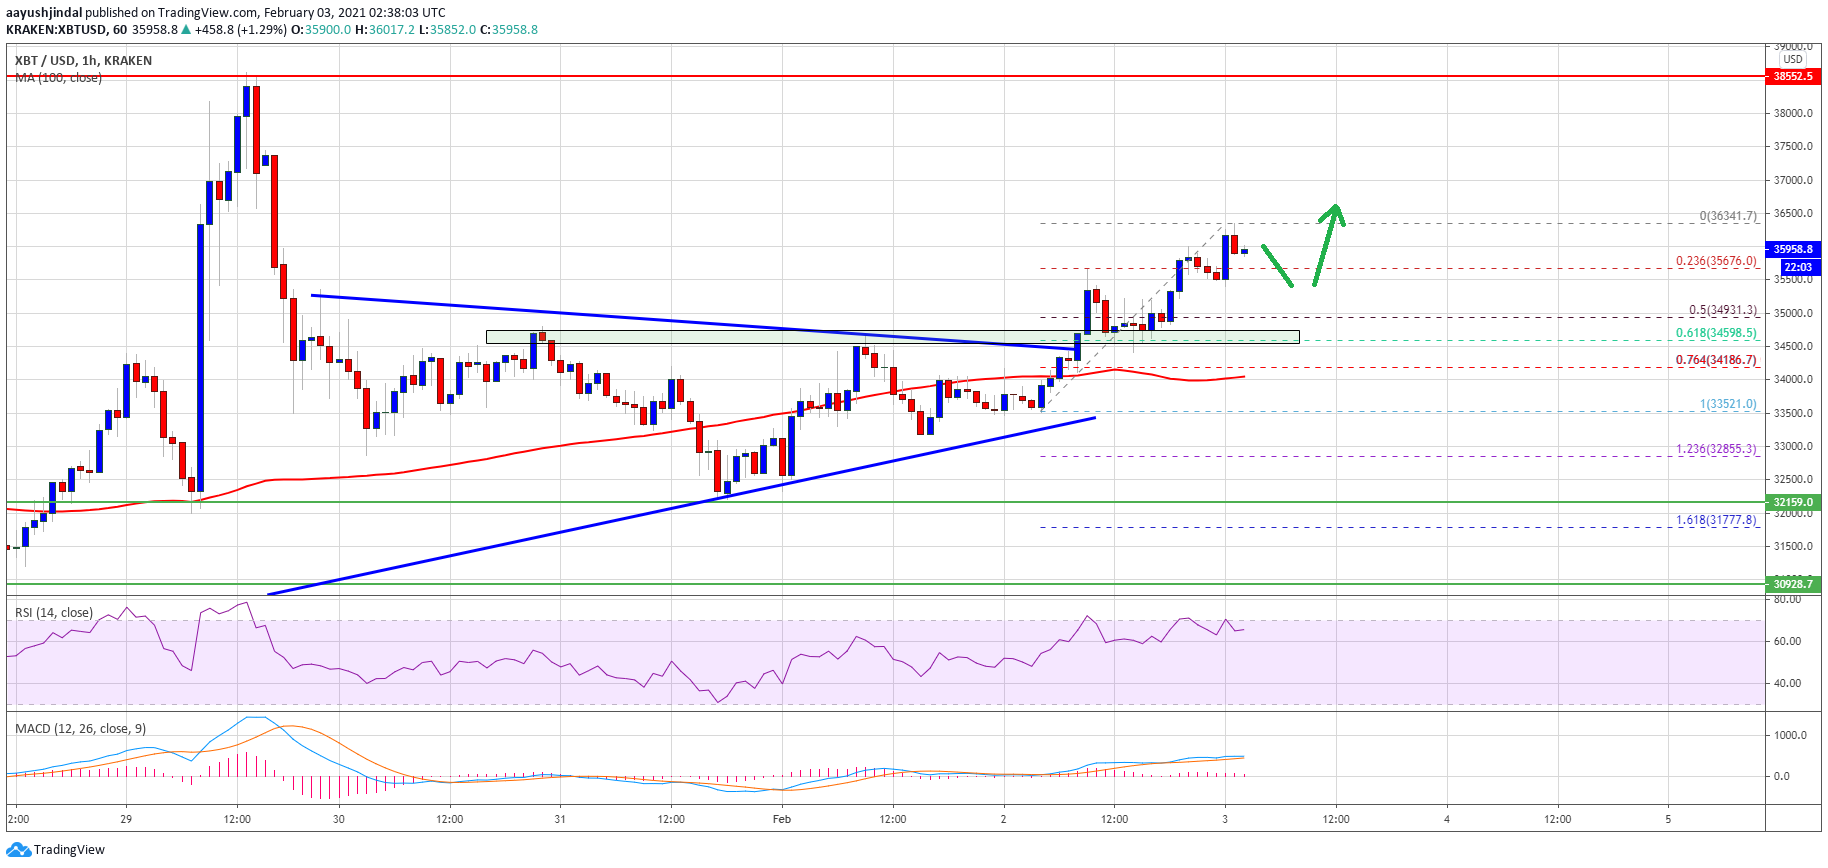 TA: Bitcoin Price Gains Traction, Why BTC Could Revisit $38K2